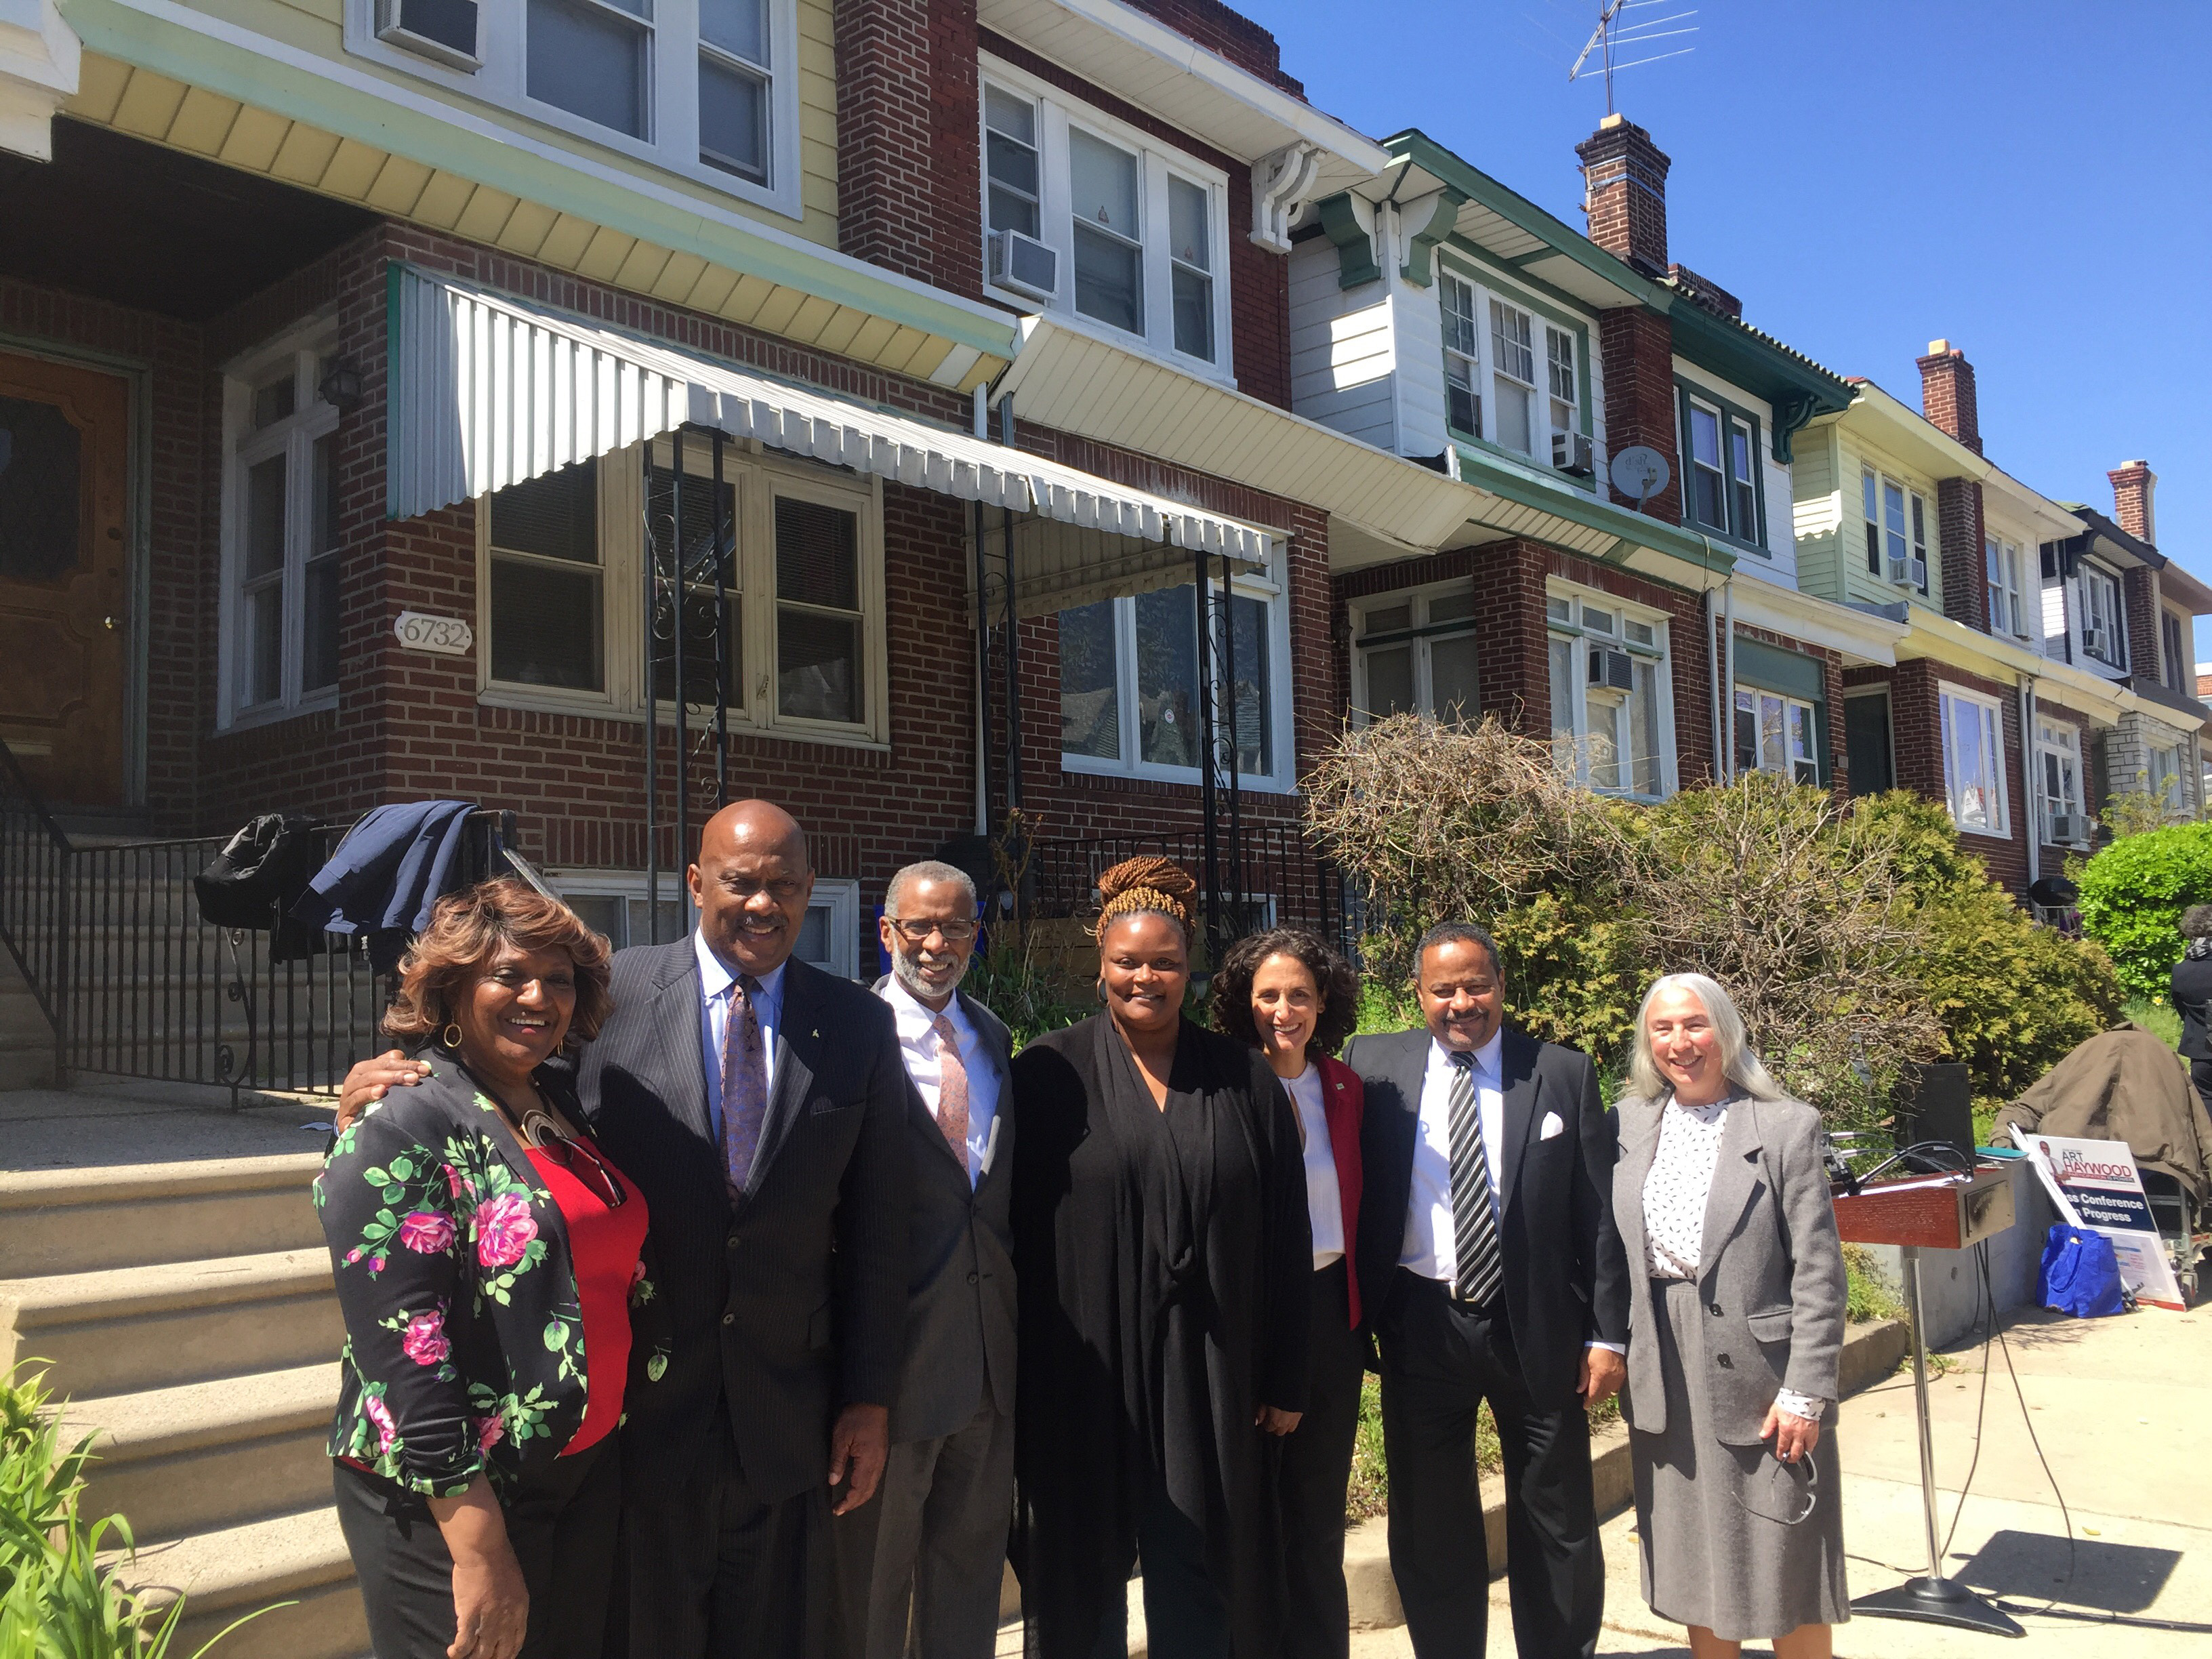 April 20, 2018: Haywood News Conference on Grant Award to Middle Neighborhoods